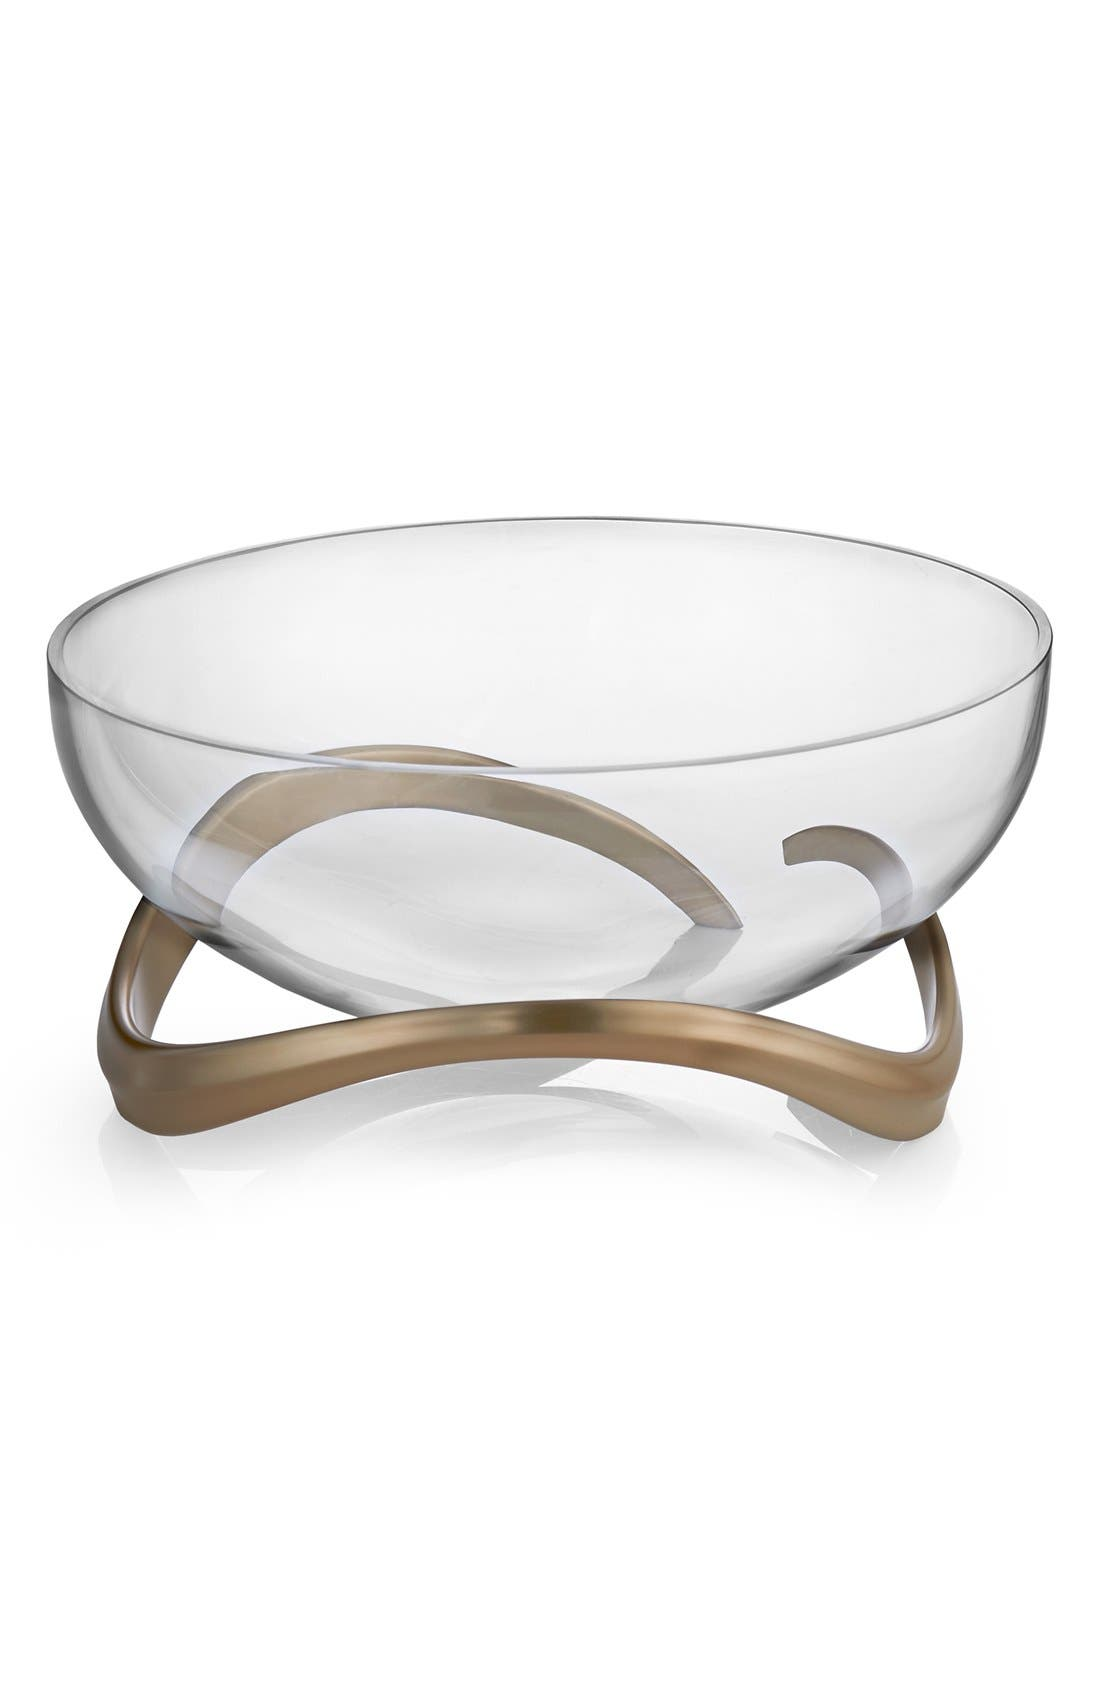 Alternate Image 1 Selected - Nambé 'Eco Collection' Glass Centerpiece Bowl